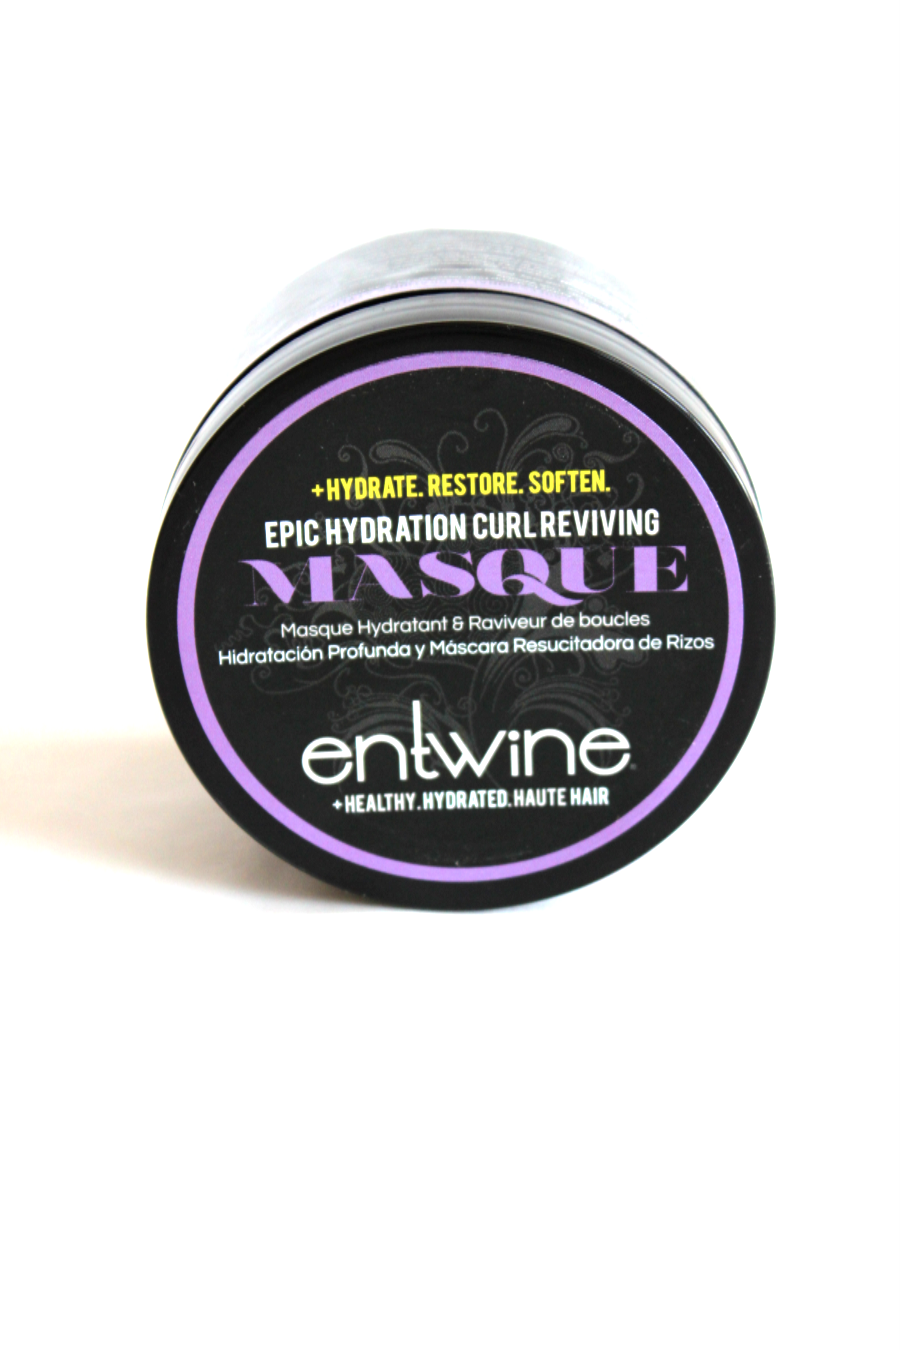 [EXOTIKA] Epic Hydration + Curl Reviving MASQUE, 8oz.